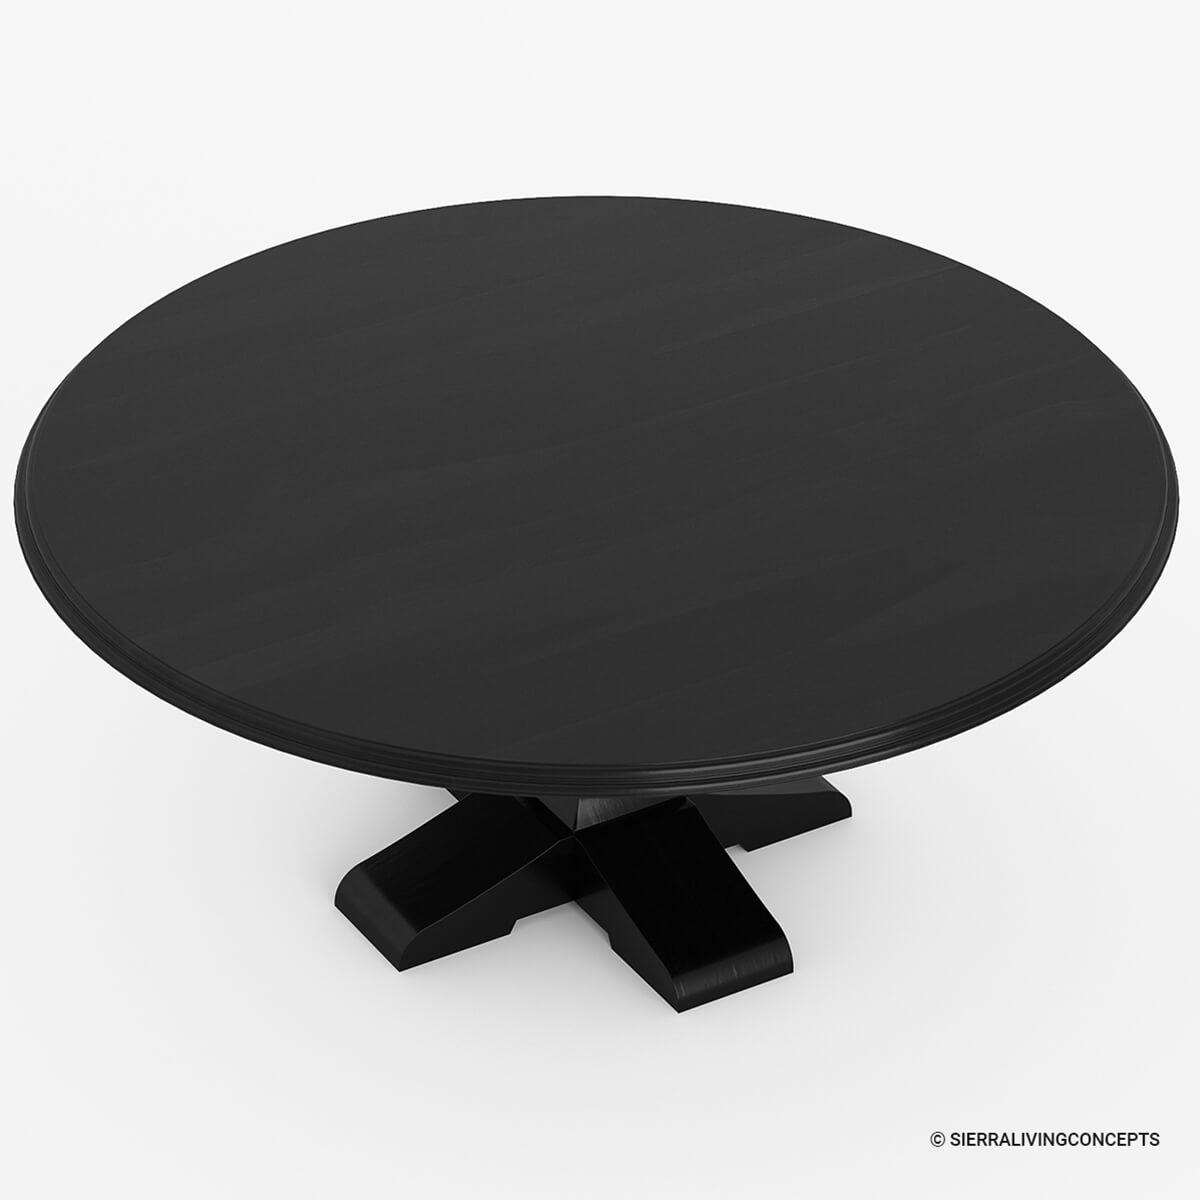 Sierra nevada rustic solid wood large round dining table for 10 person dining table dimensions